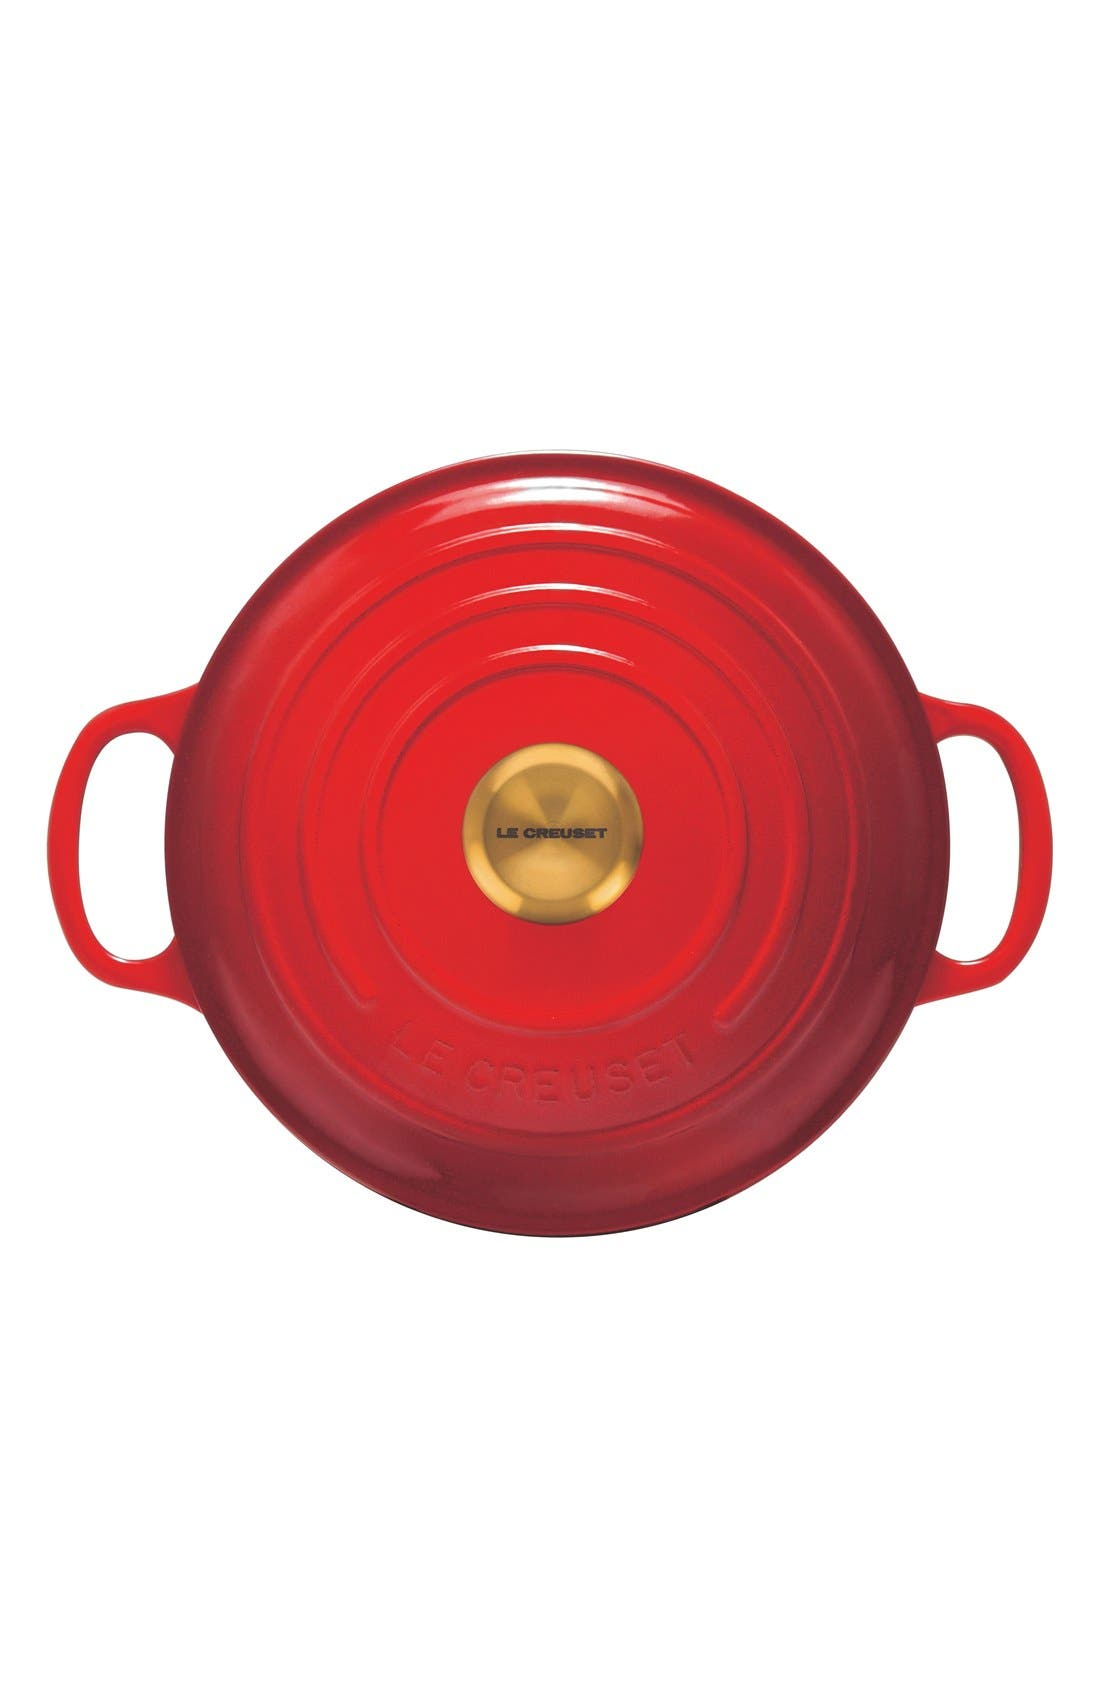 Gold Knob Collection 4 1/2 Quart Round French/Dutch Oven,                             Alternate thumbnail 2, color,                             600